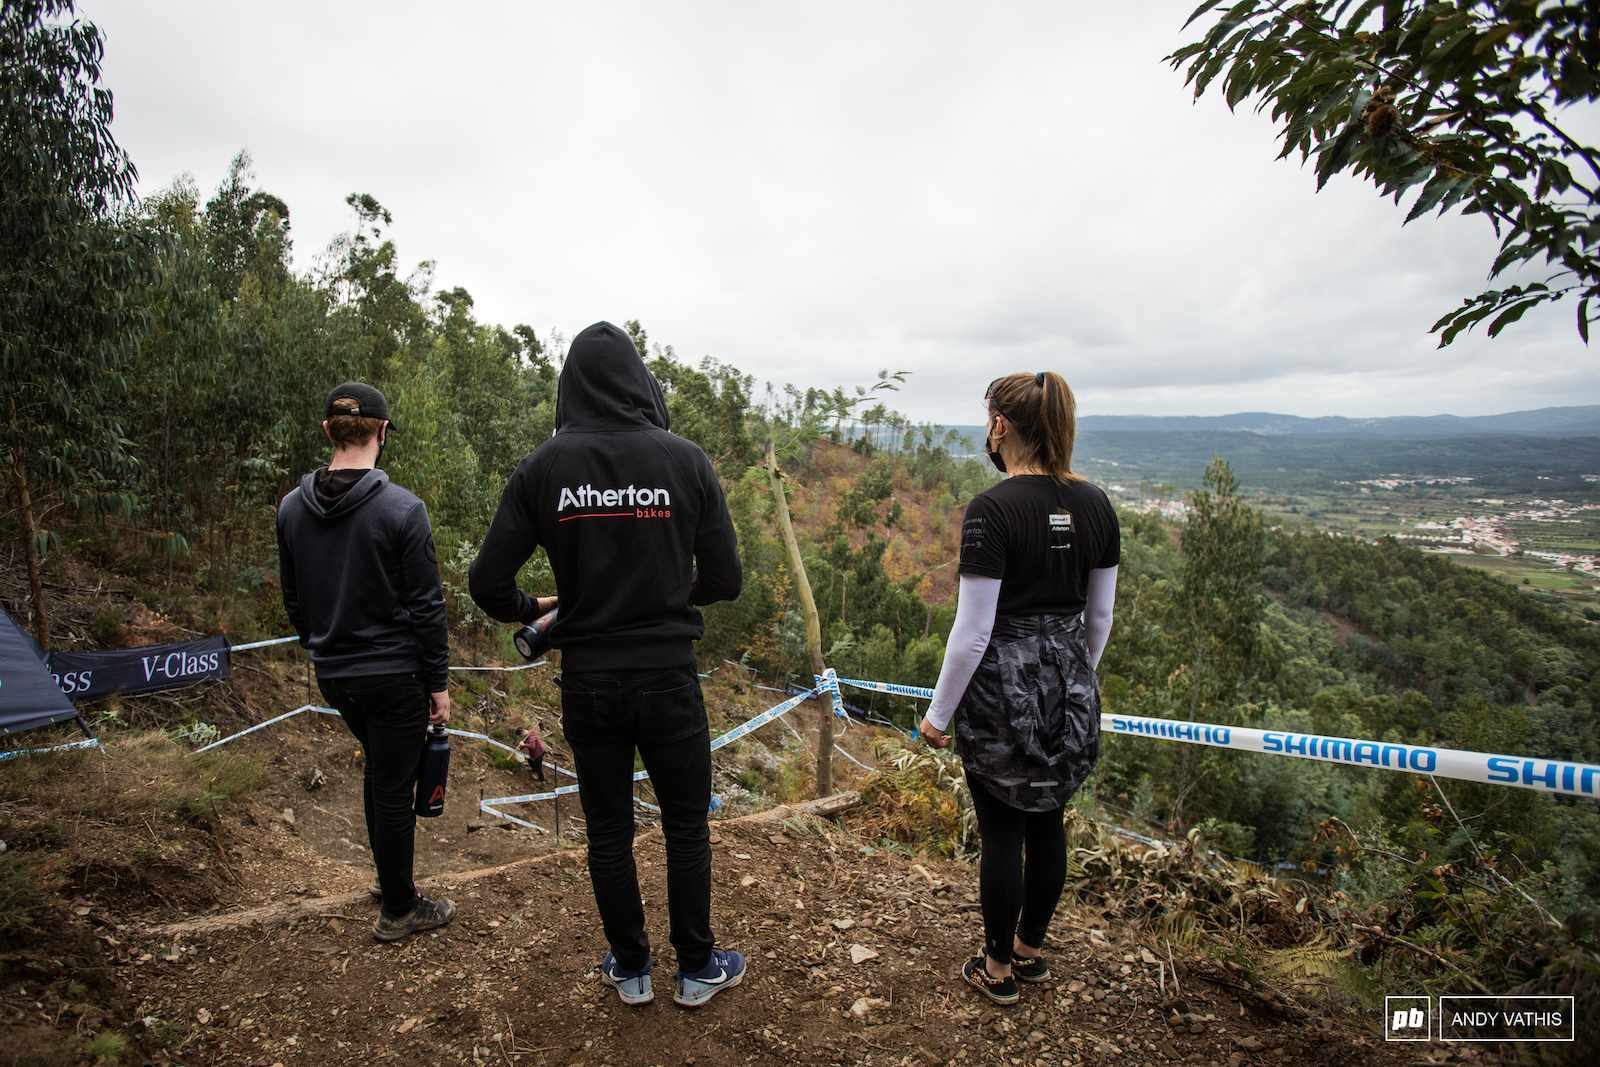 The Atherton Racing gang checking out the open steep part.